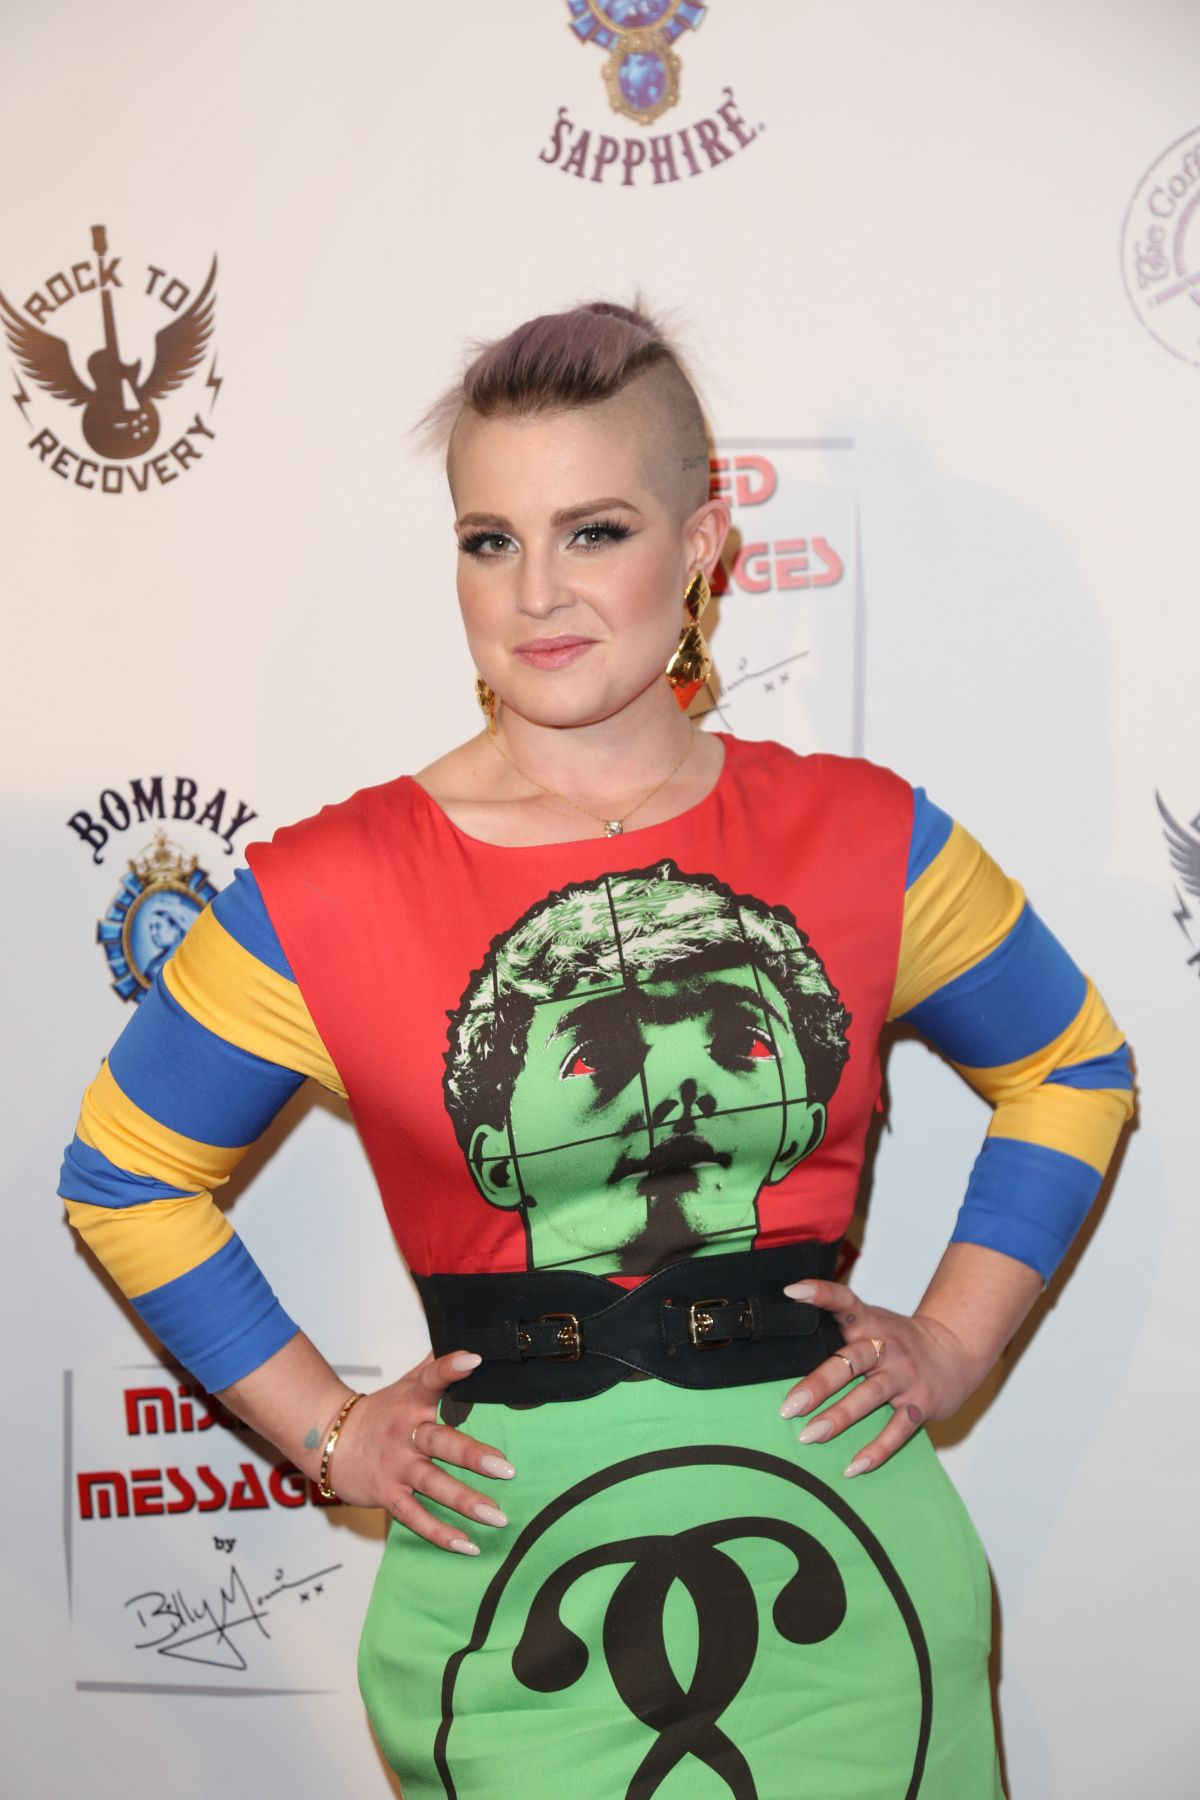 KELLY OSBOURNE at Sur Le Mur Presents Mixed Messages Art Opening in Beverly Hills 06/11/2016